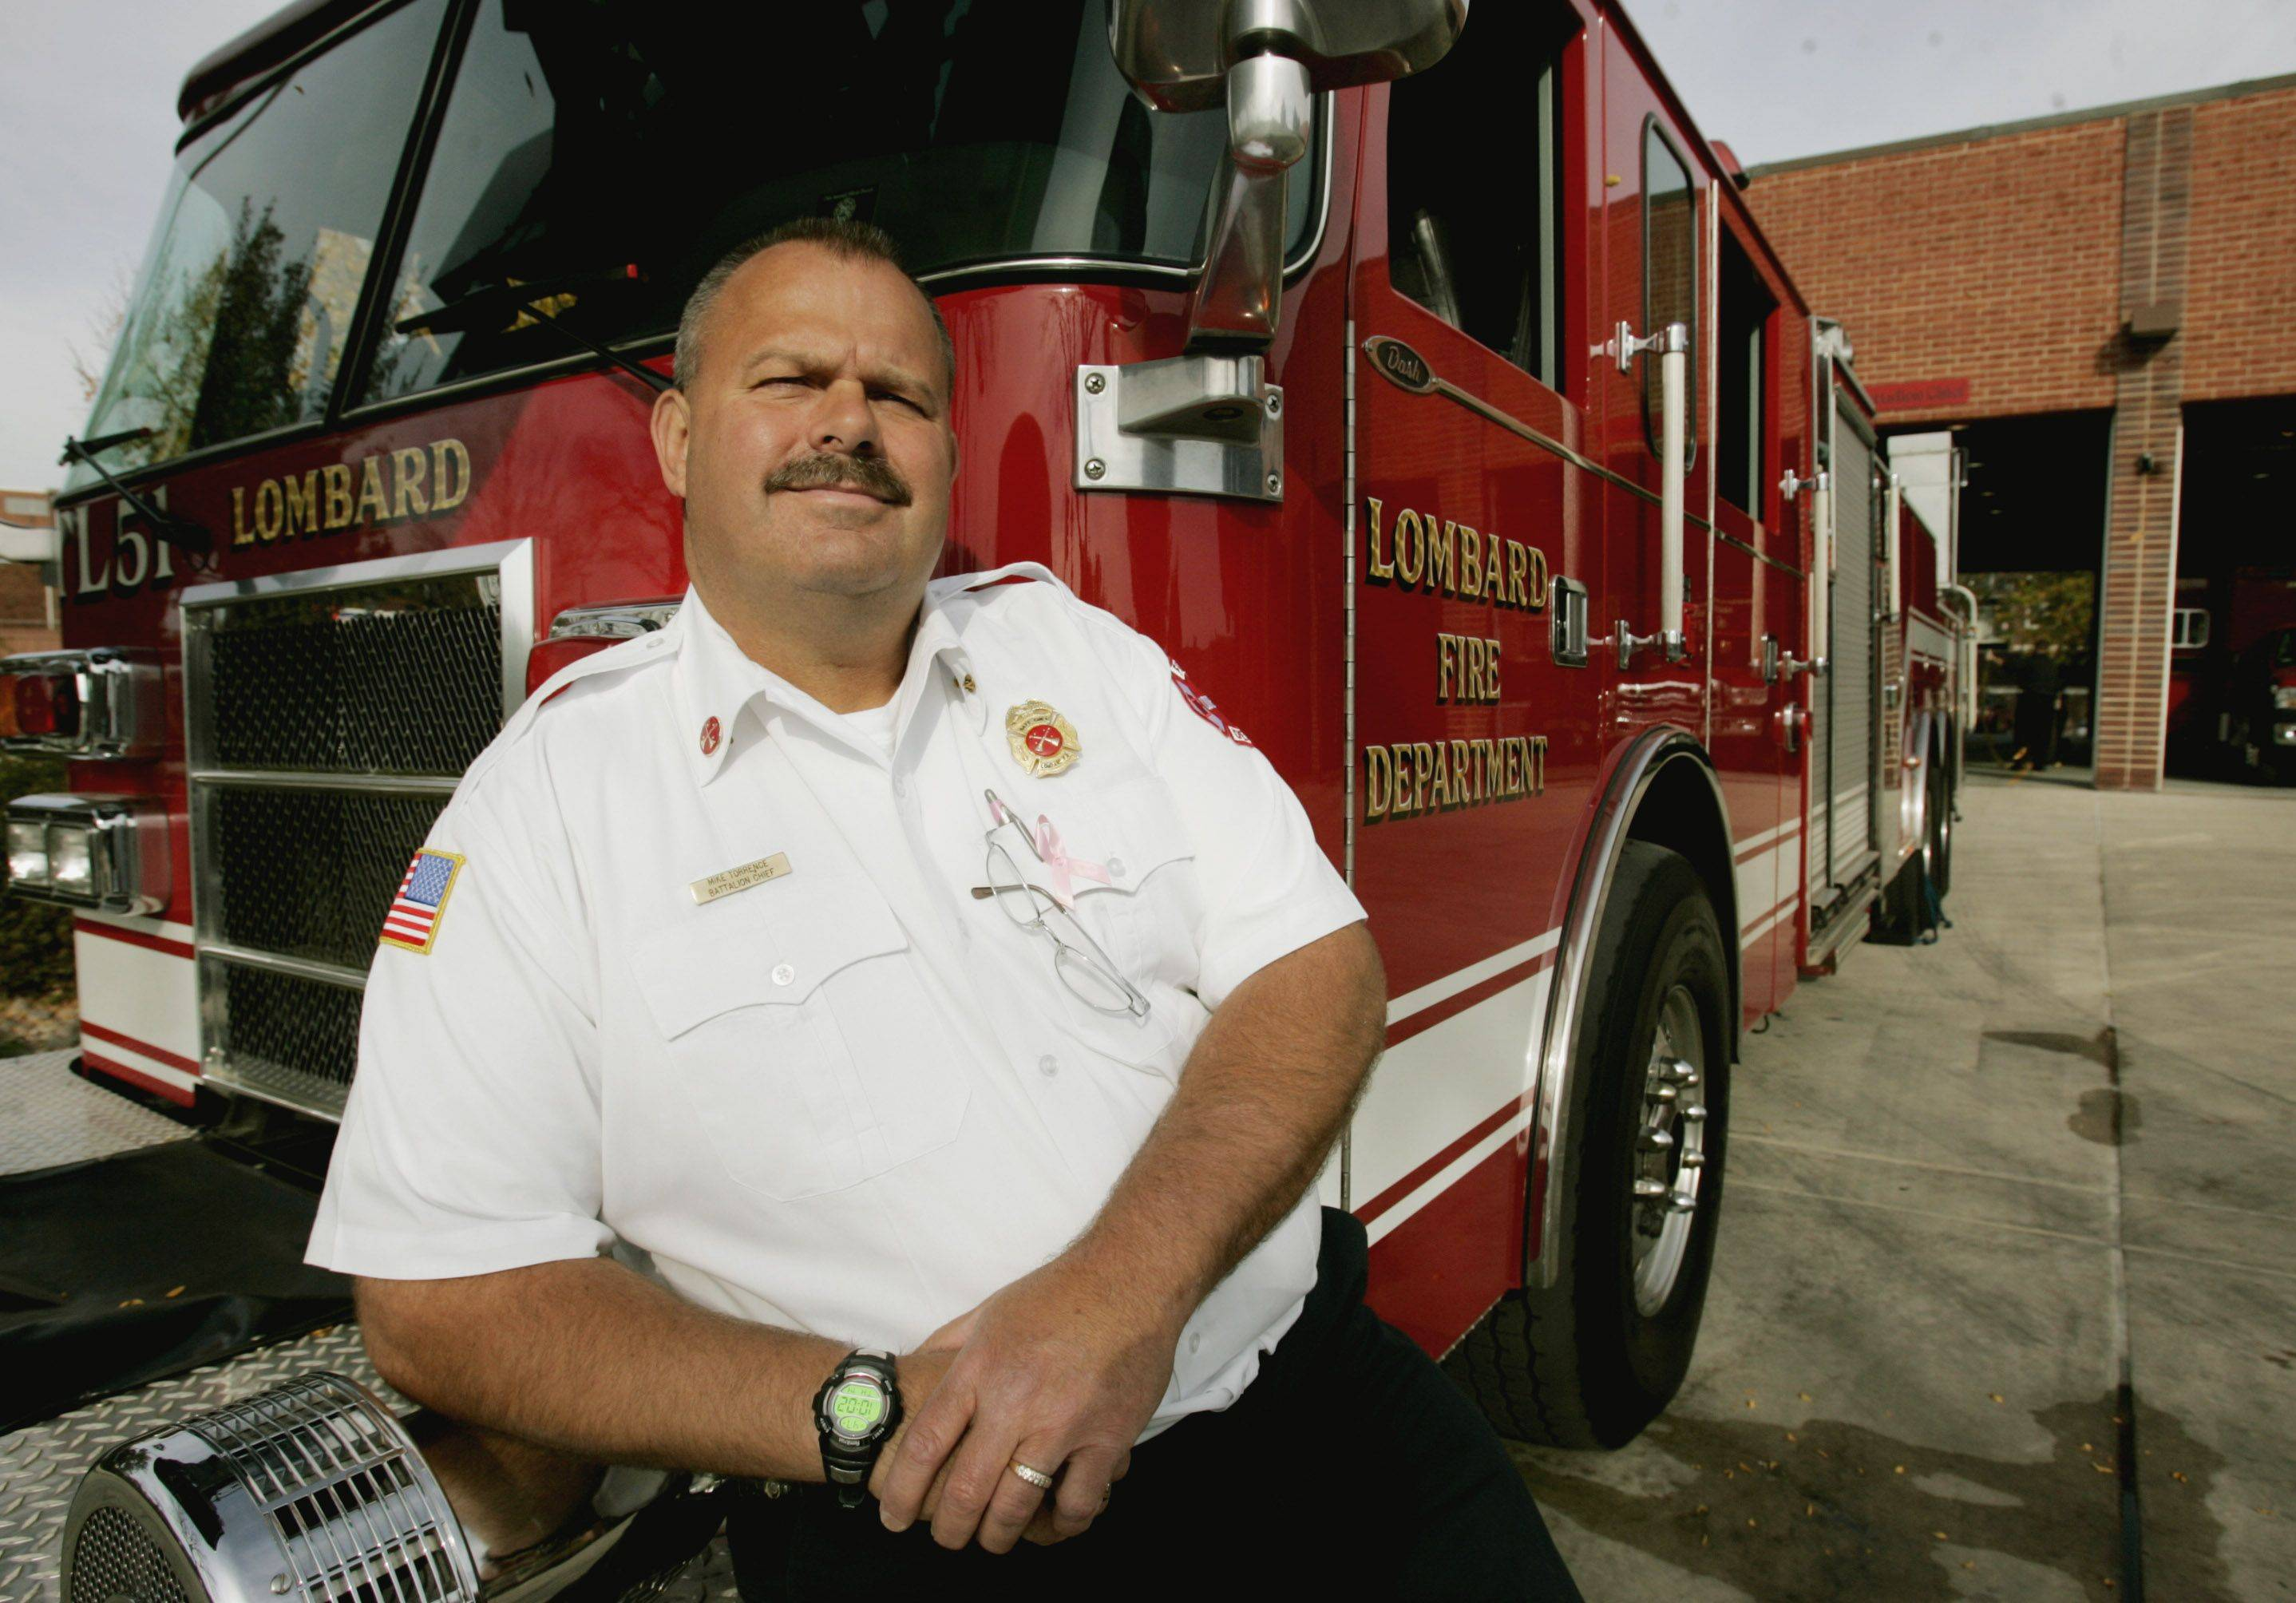 Lombard fire chief retiring for post in Yorkville